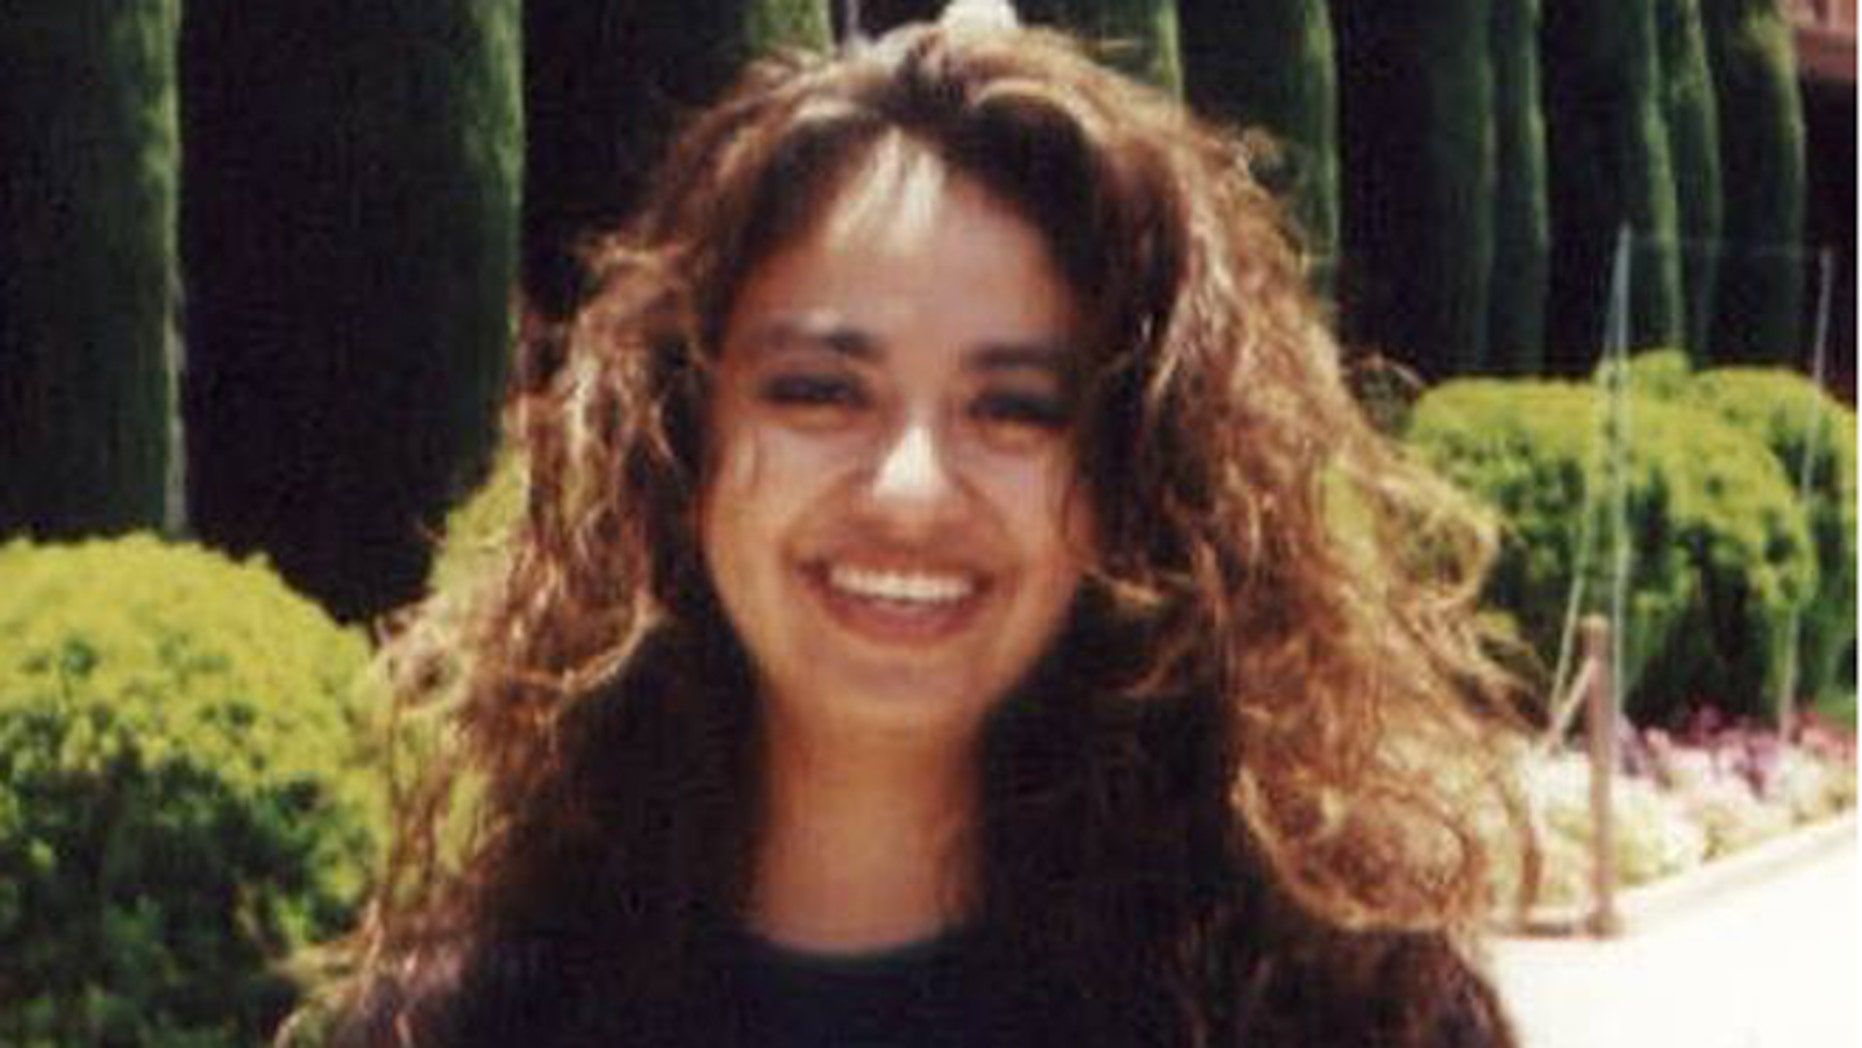 Diana Rojas was 27 when she disappeared in 2000.